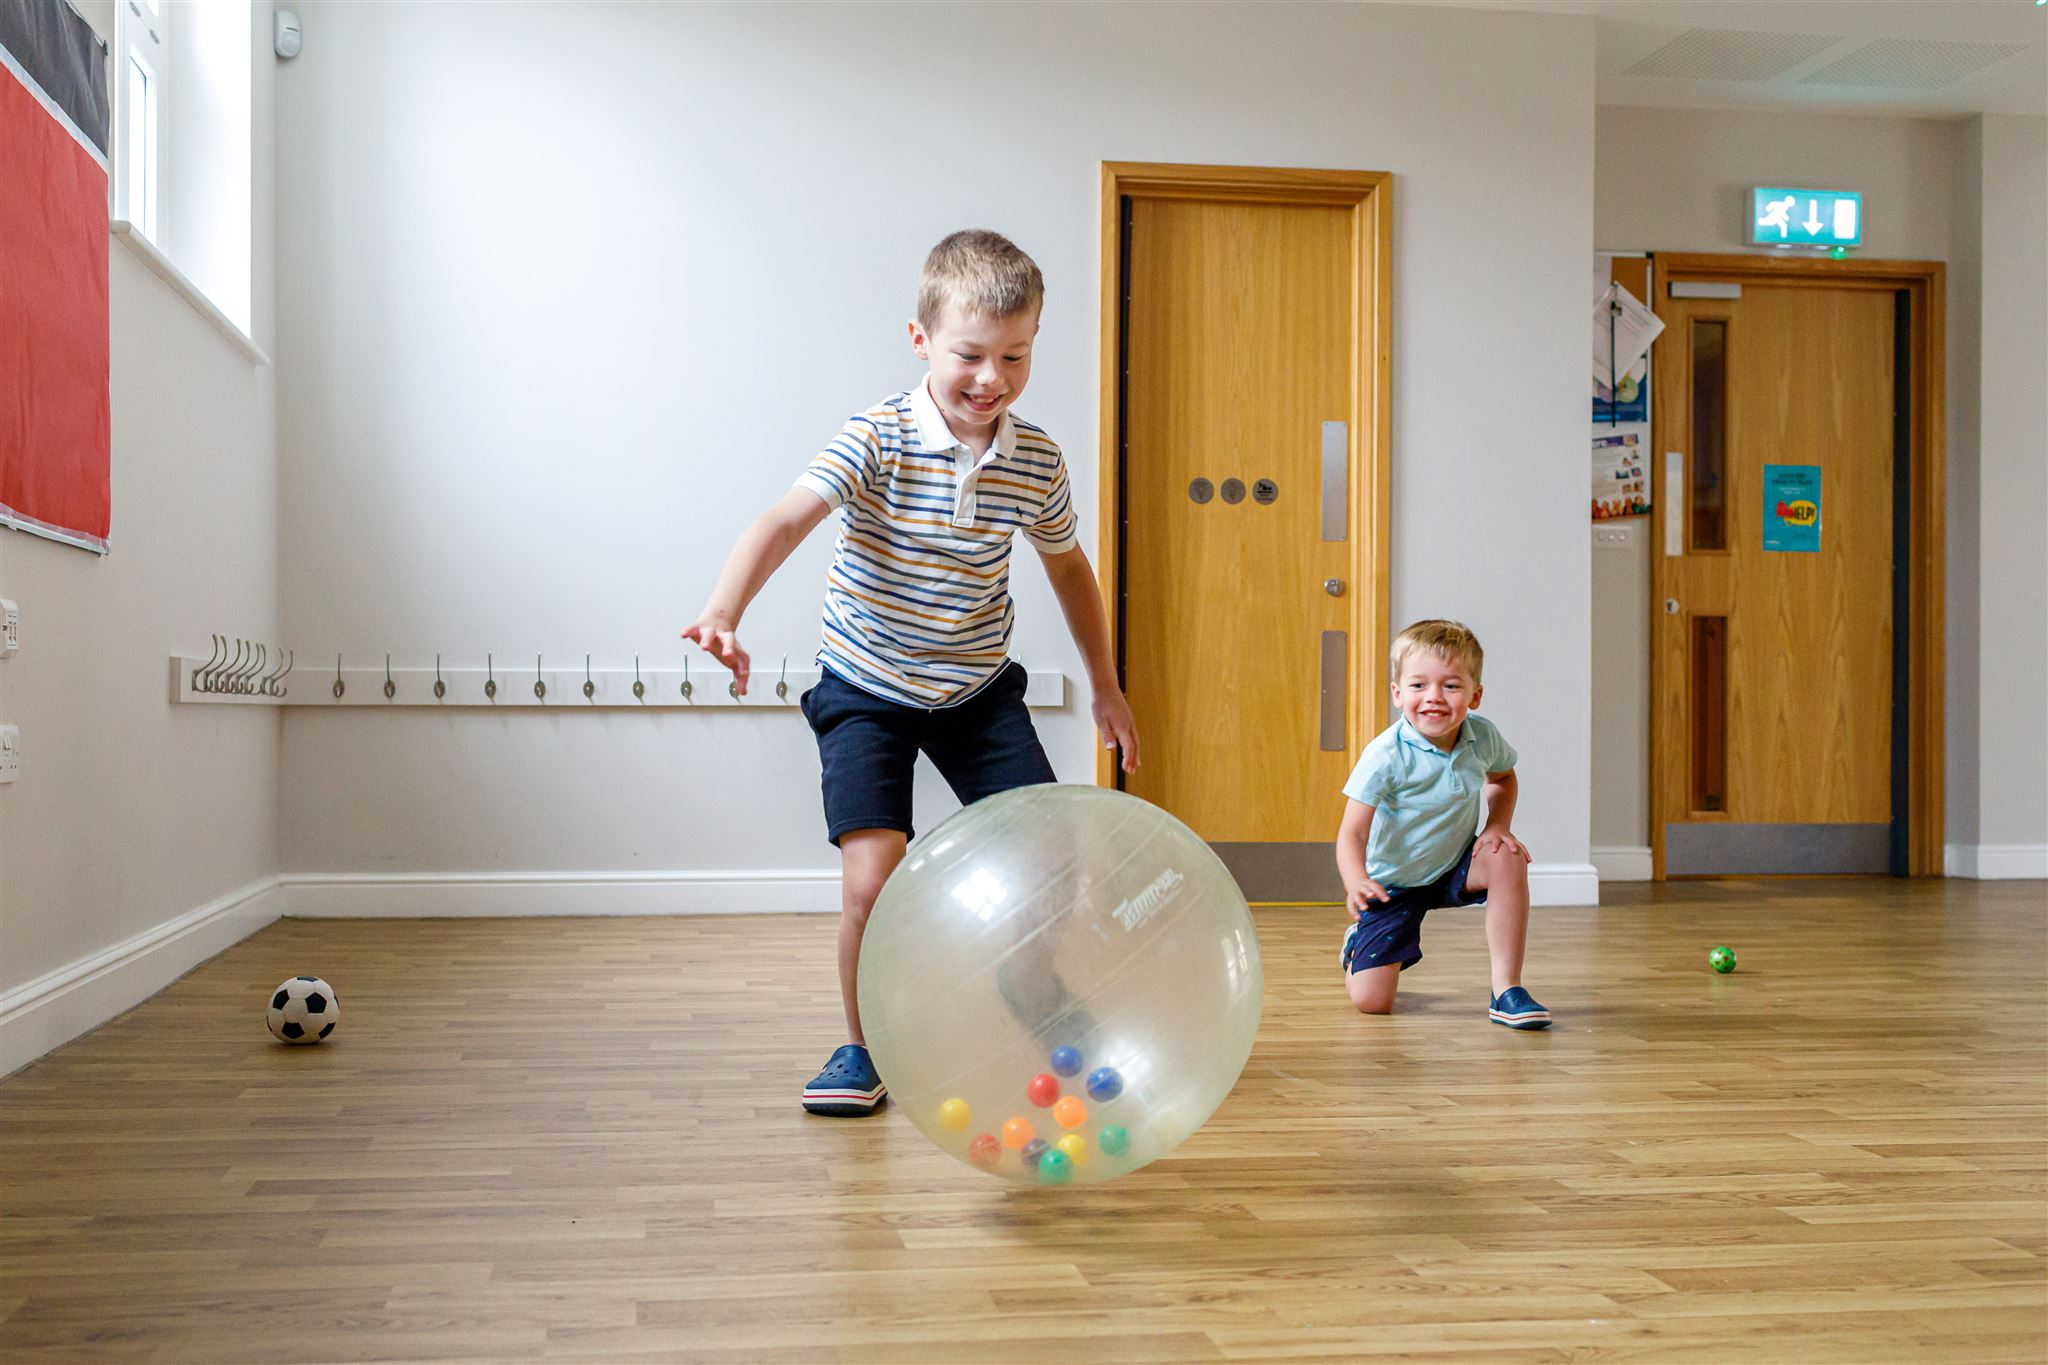 Kids playing in playgroup space at St Andrew's Centre in Histon Cambridgeshire